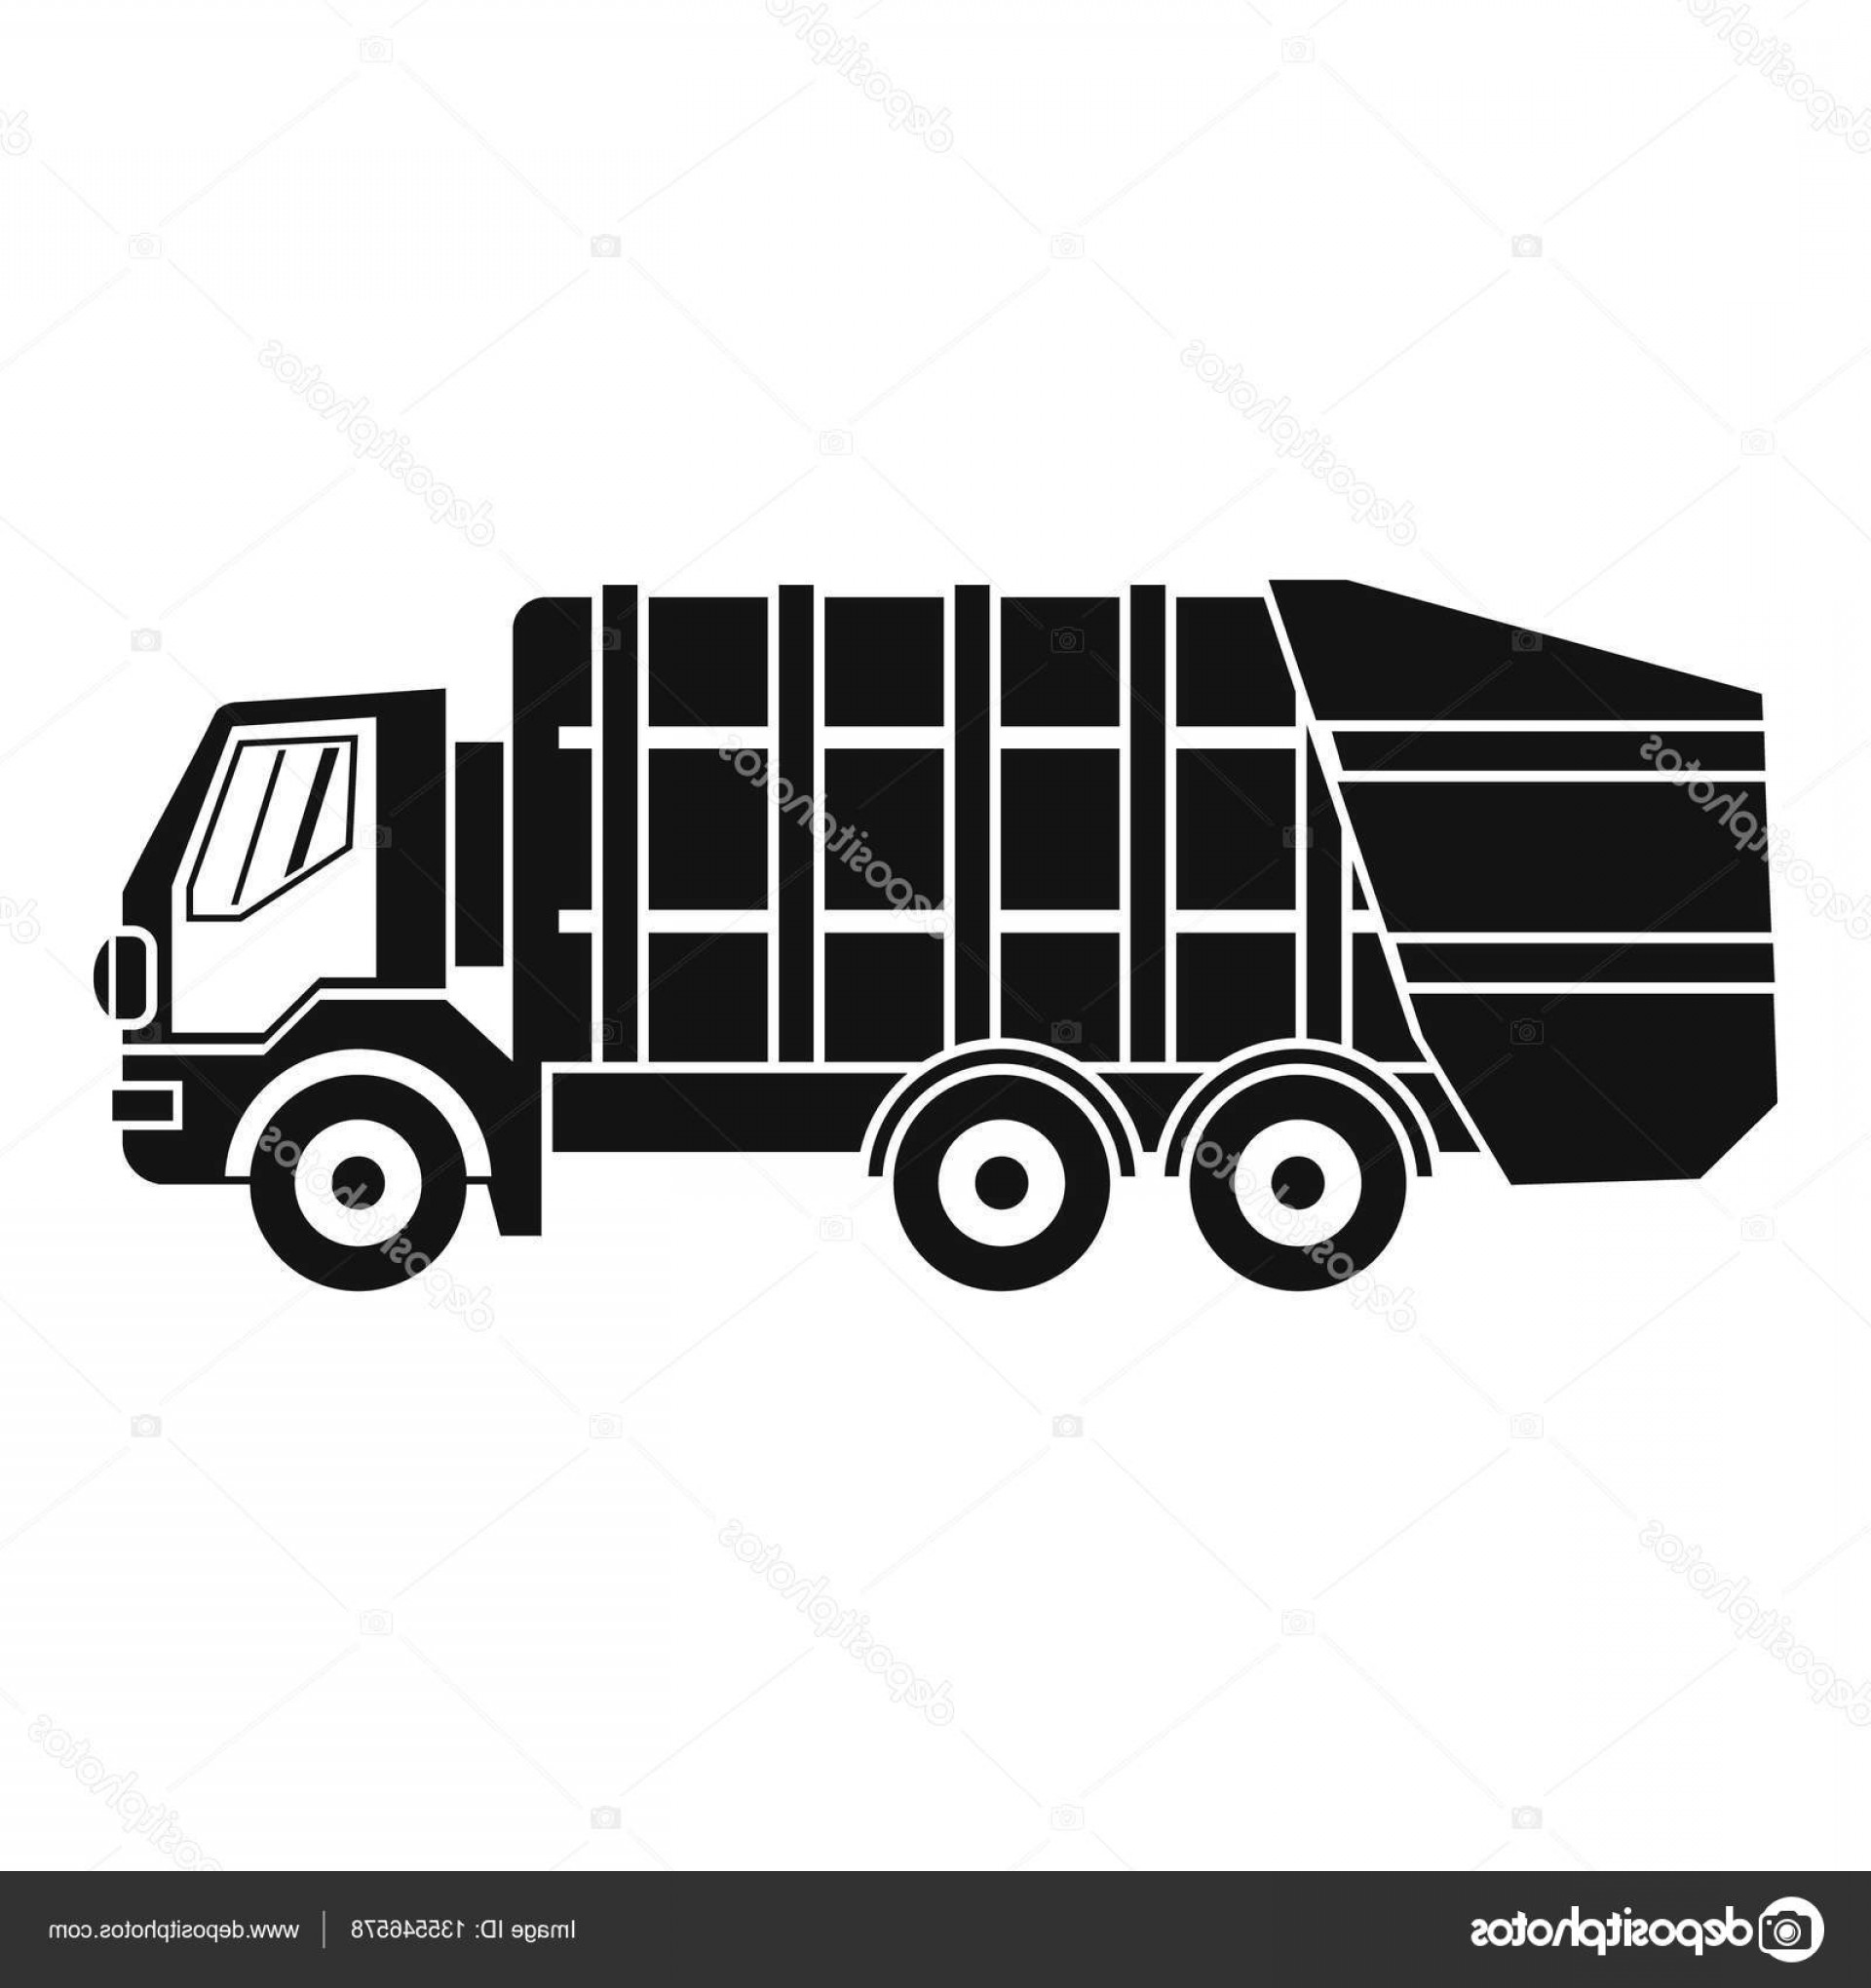 Dump Truck Vector Black And White: Stock Illustration Garbage Truck Icon Simple Style